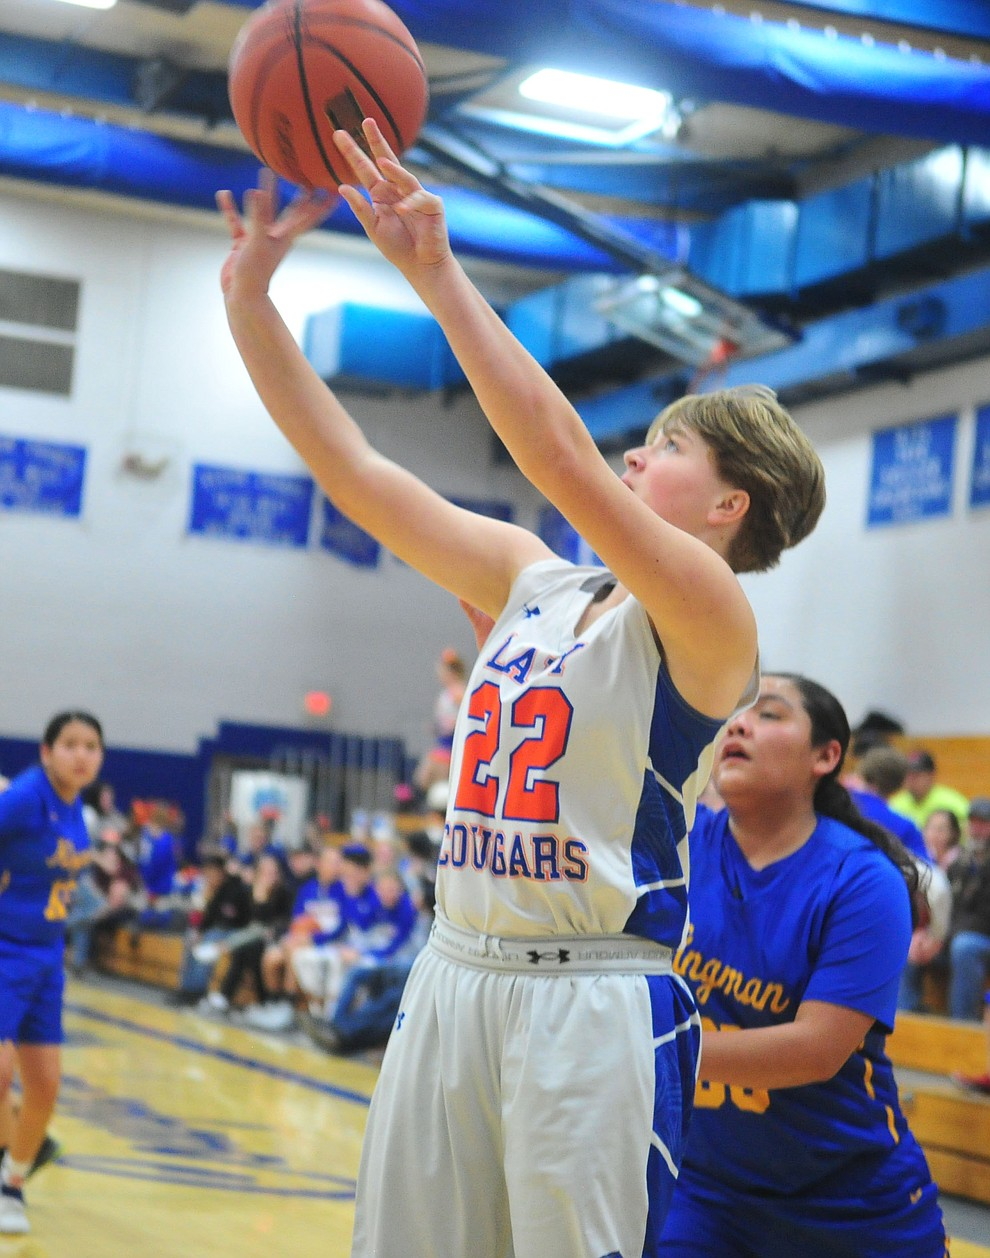 Chino Valley's Shyla Moseley takes a shot as they face the Kingman Bulldogs Thursday, Jan. 24, 2019 in Chino Valley. (Les Stukenberg/Courier).